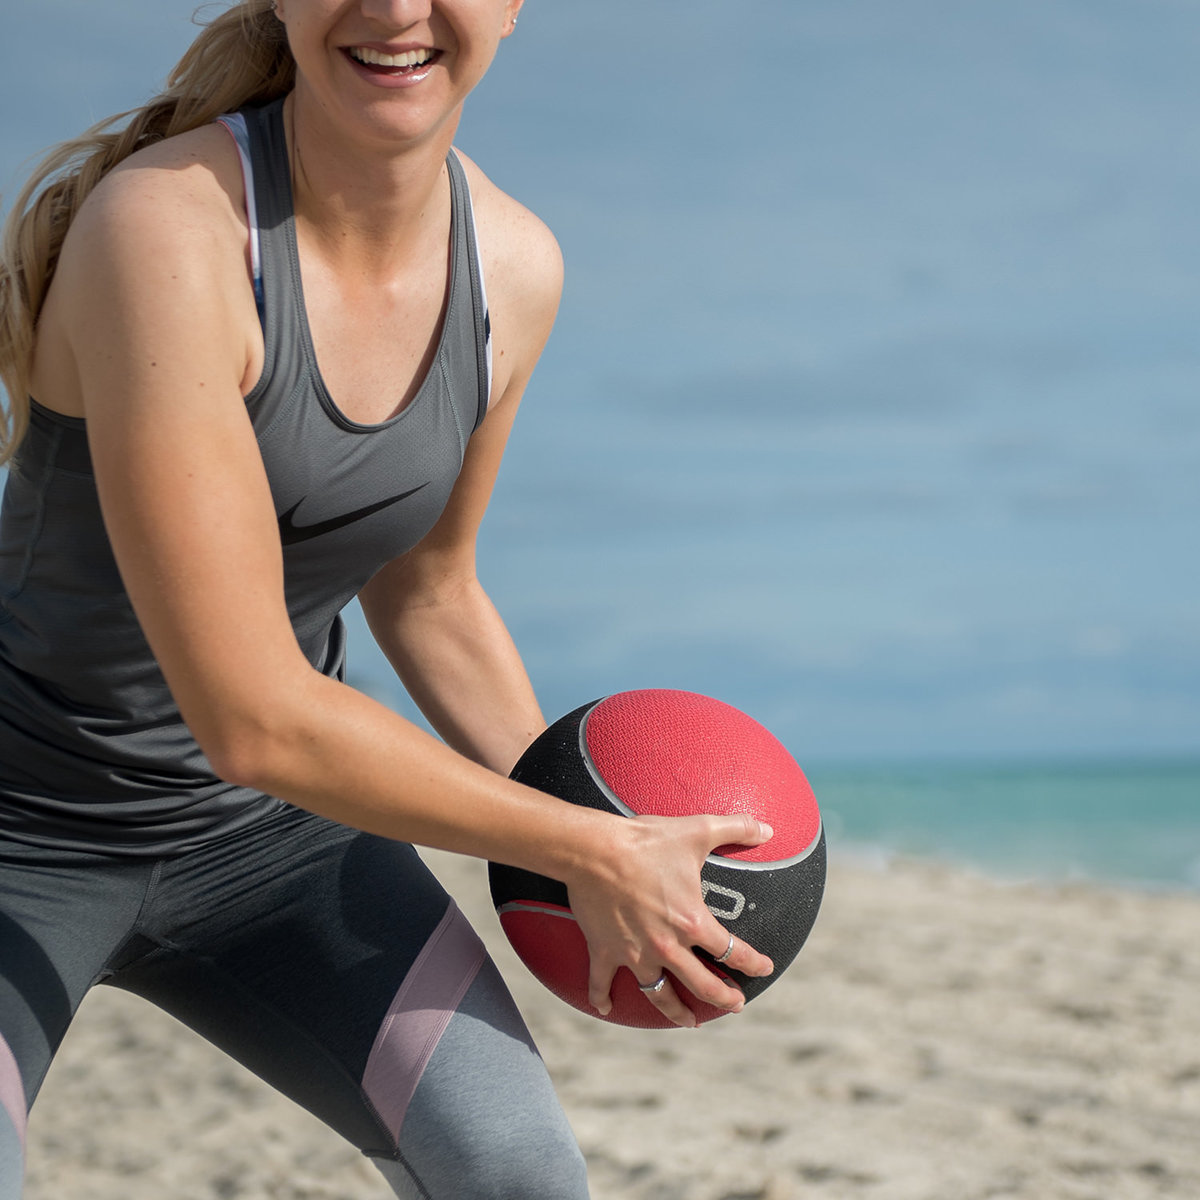 woman catching medicine ball